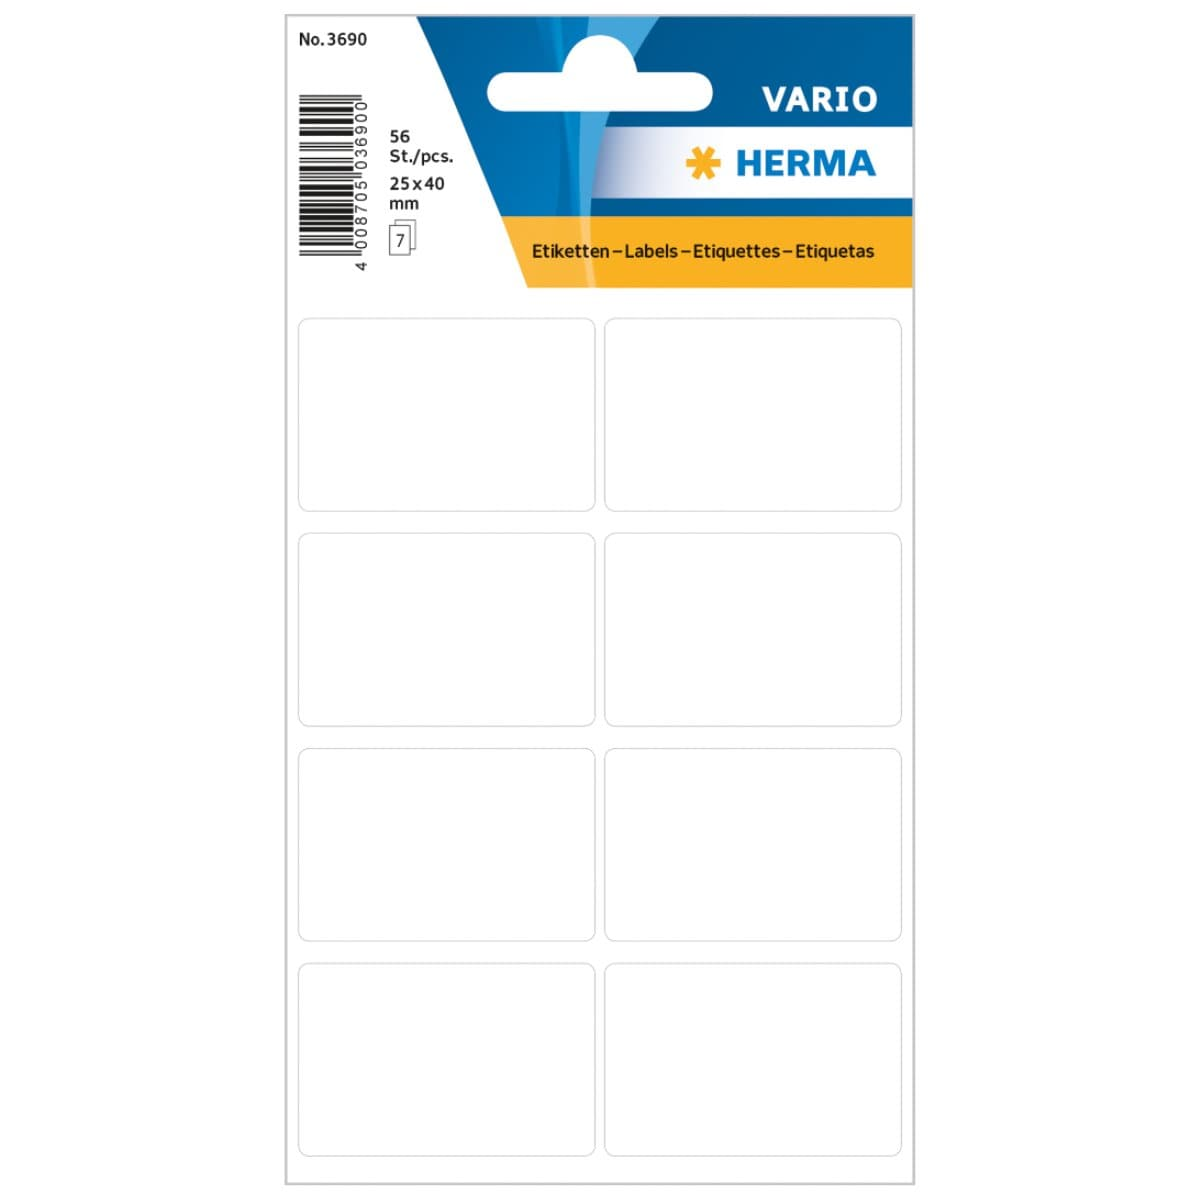 Herma Vario Sticker Labels, 25 x 40 mm, 56/pack, White